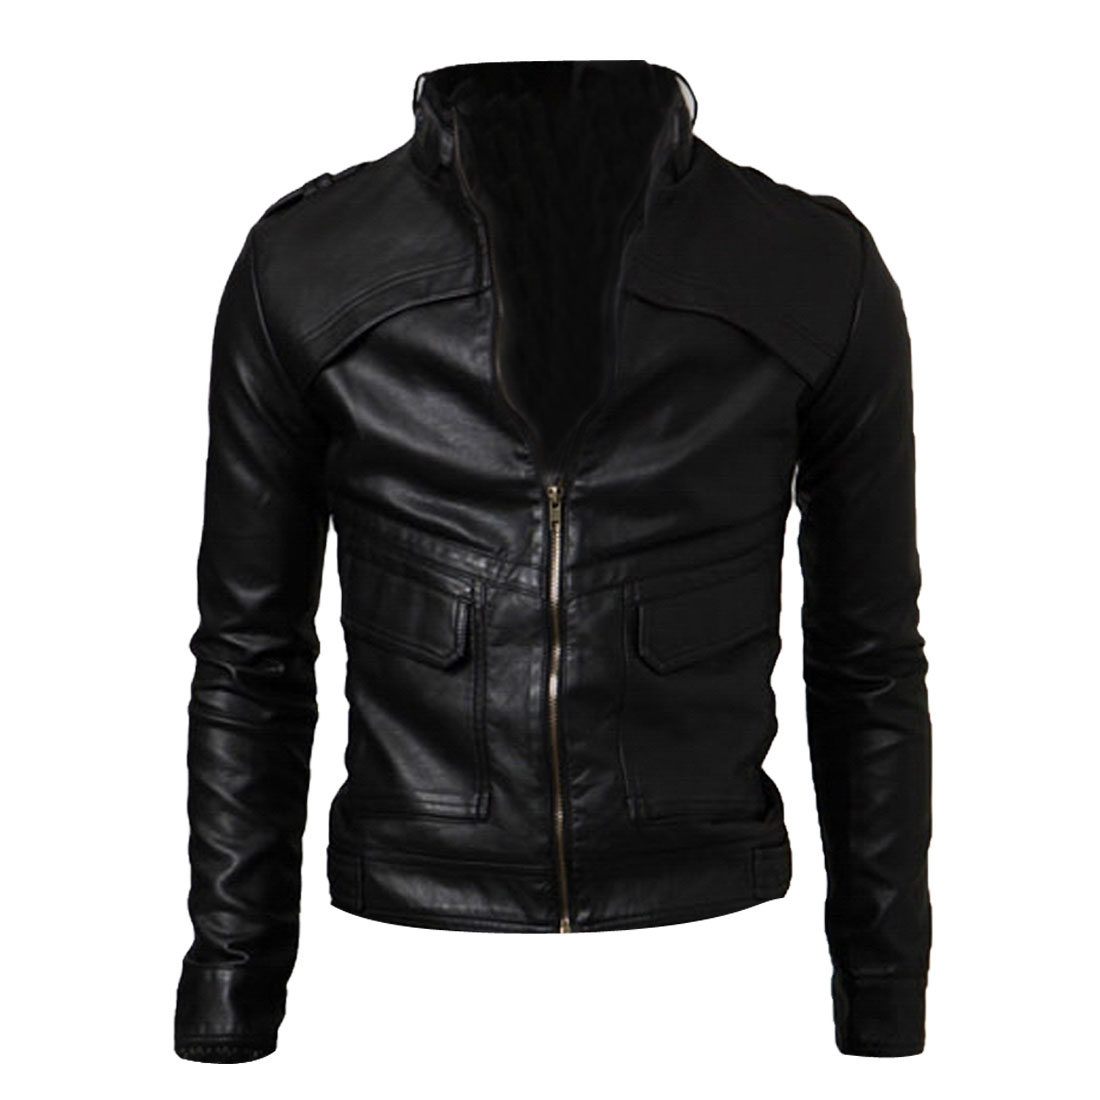 Man Chic Zipper-Up 4 Pockets Front Design Black Faux Leather Jacket M